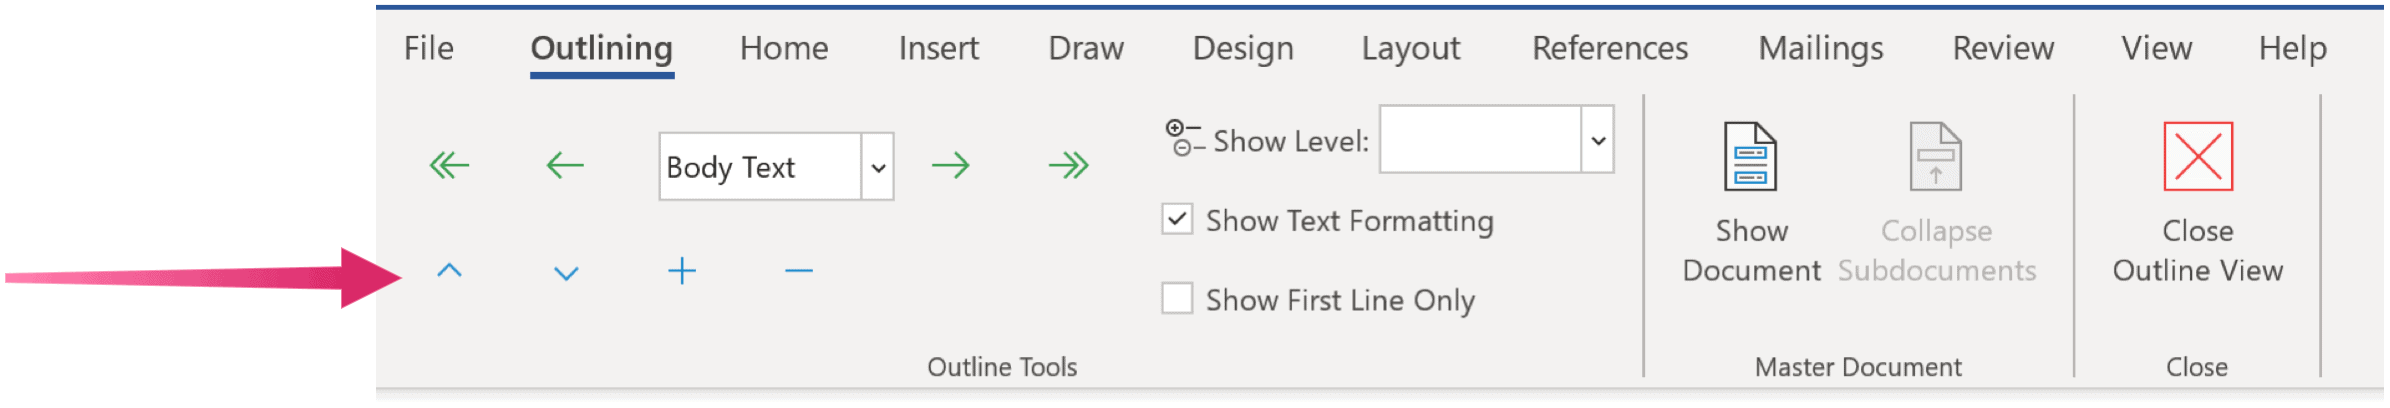 Outline View on Microsoft Word